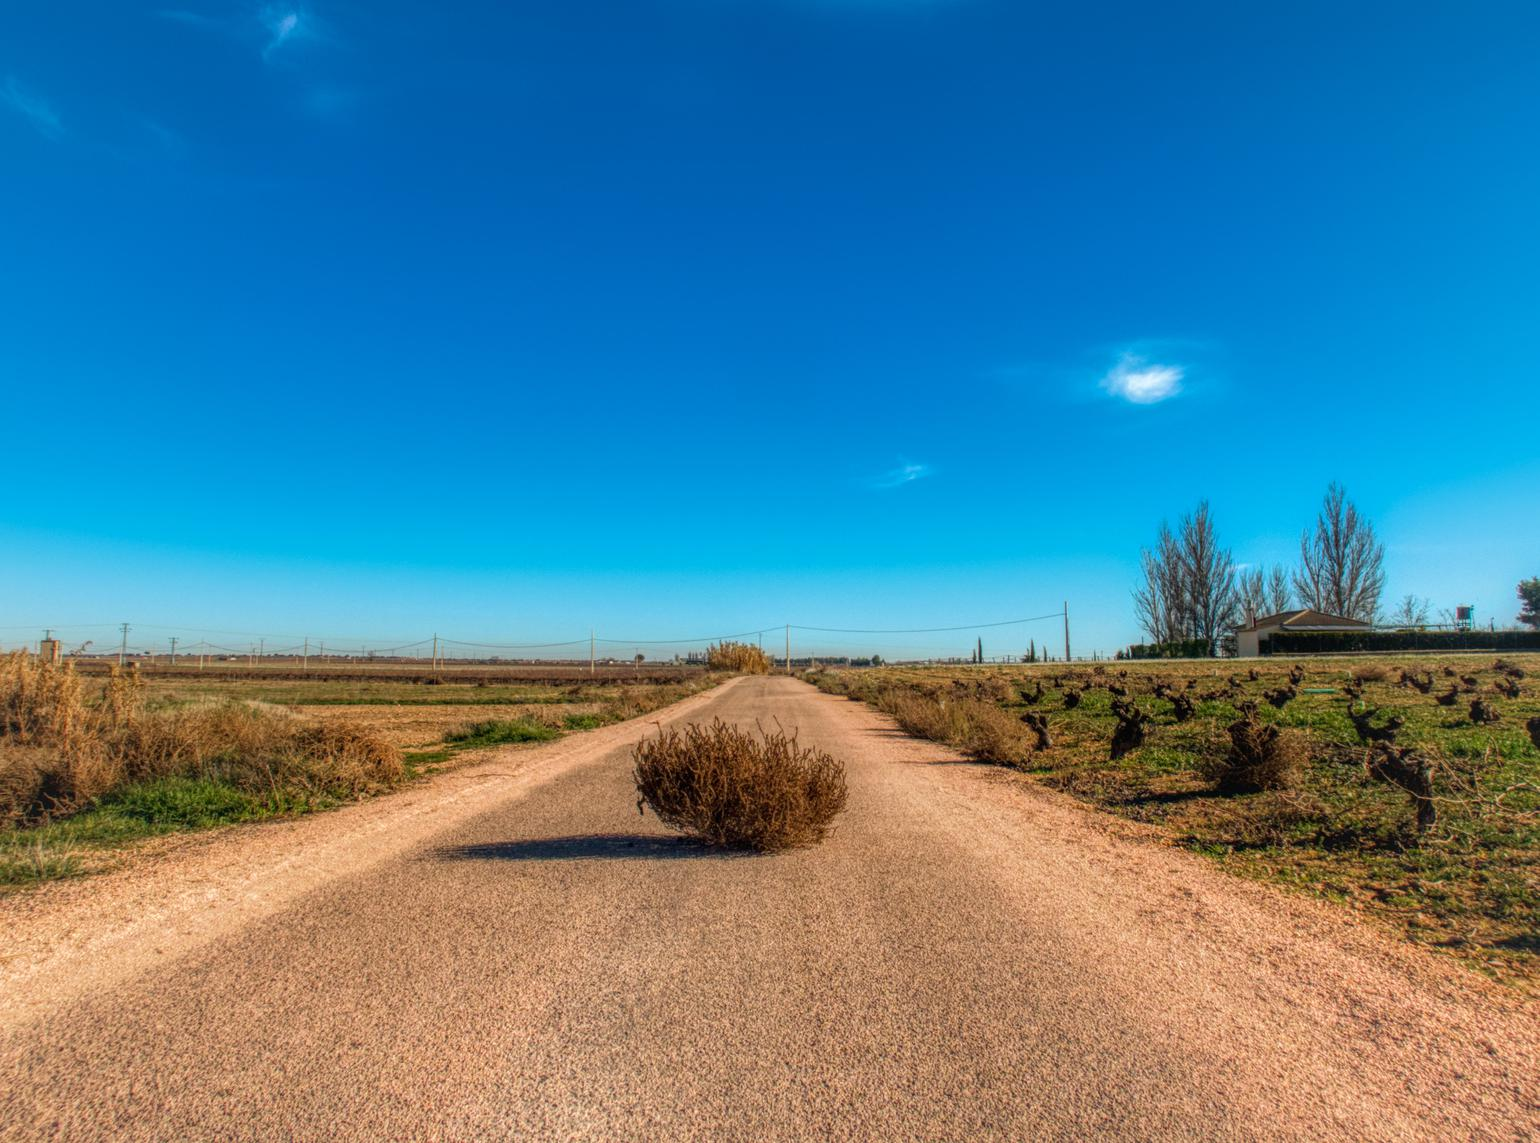 A road with tumbleweed